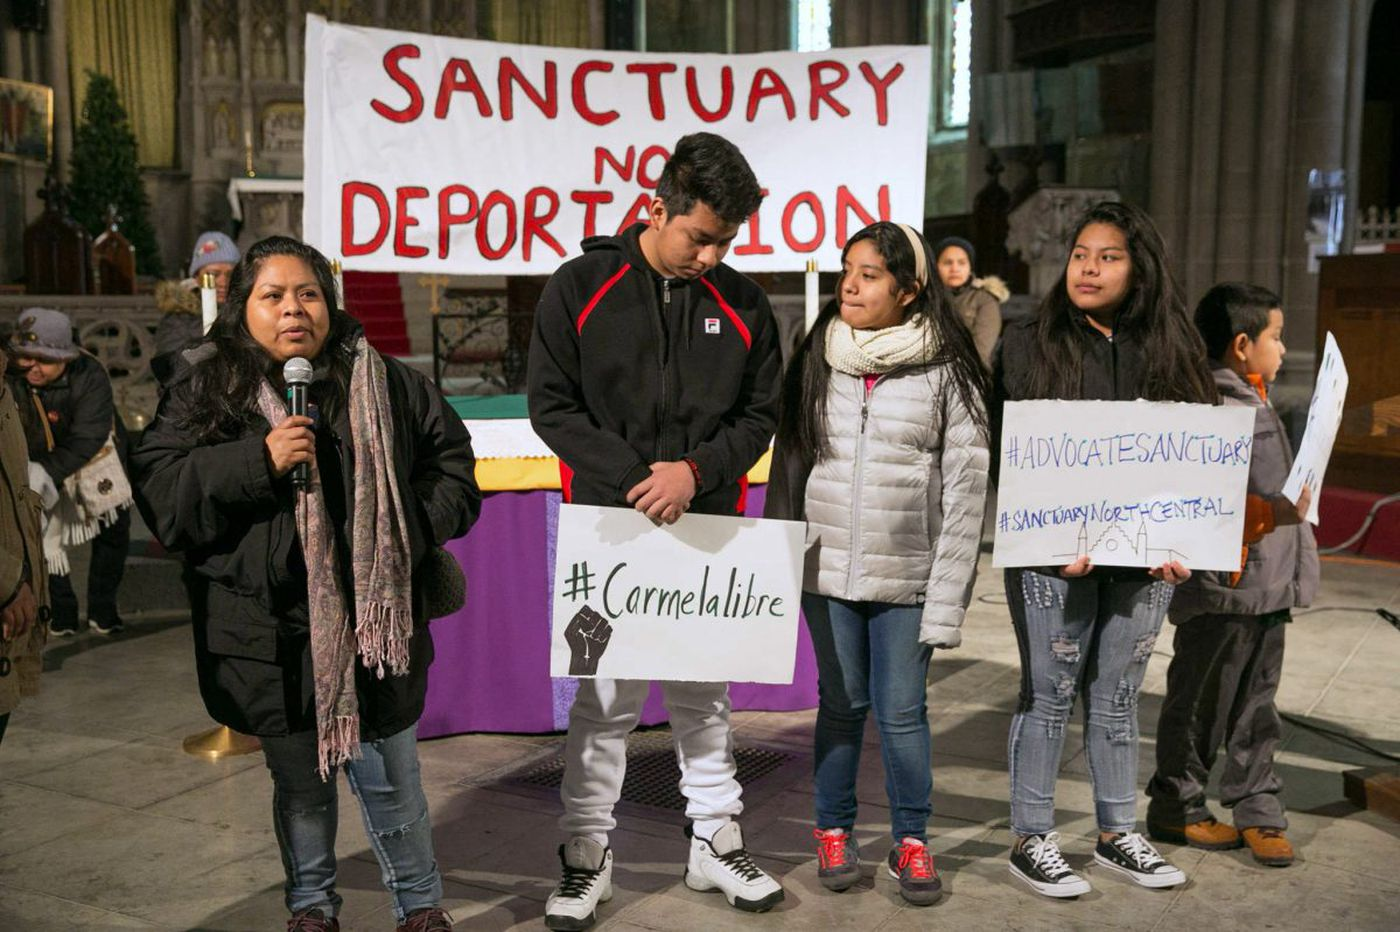 Undocumented immigrant mother, four children claim sanctuary in North Philly church